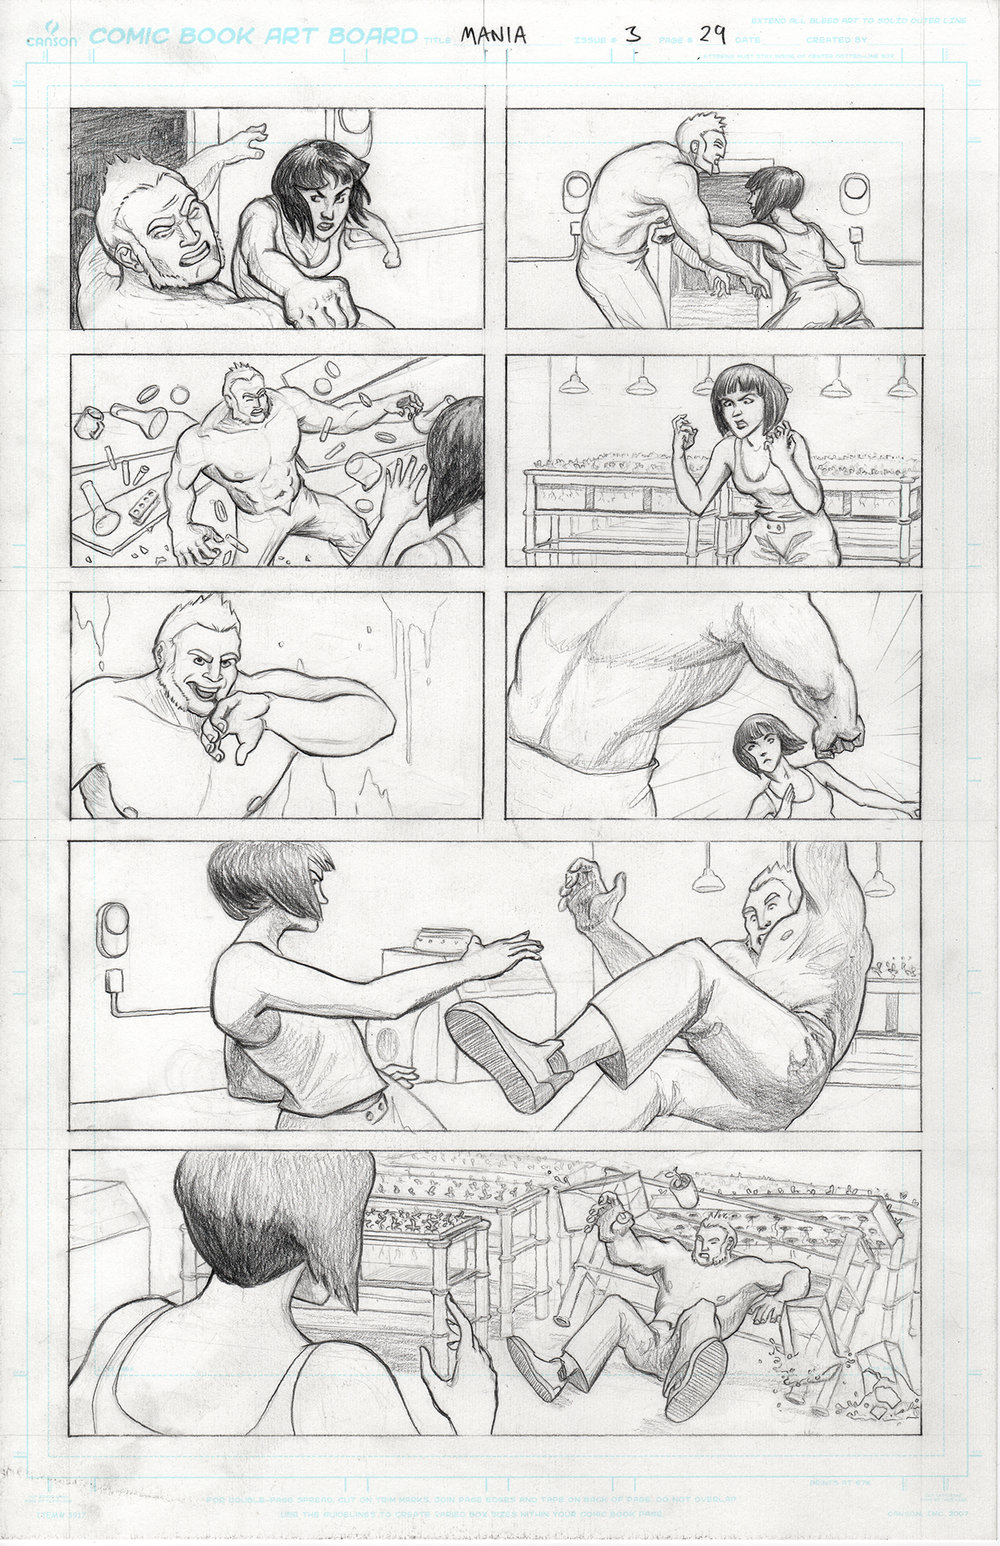 MANIA Issue 3, Page 29